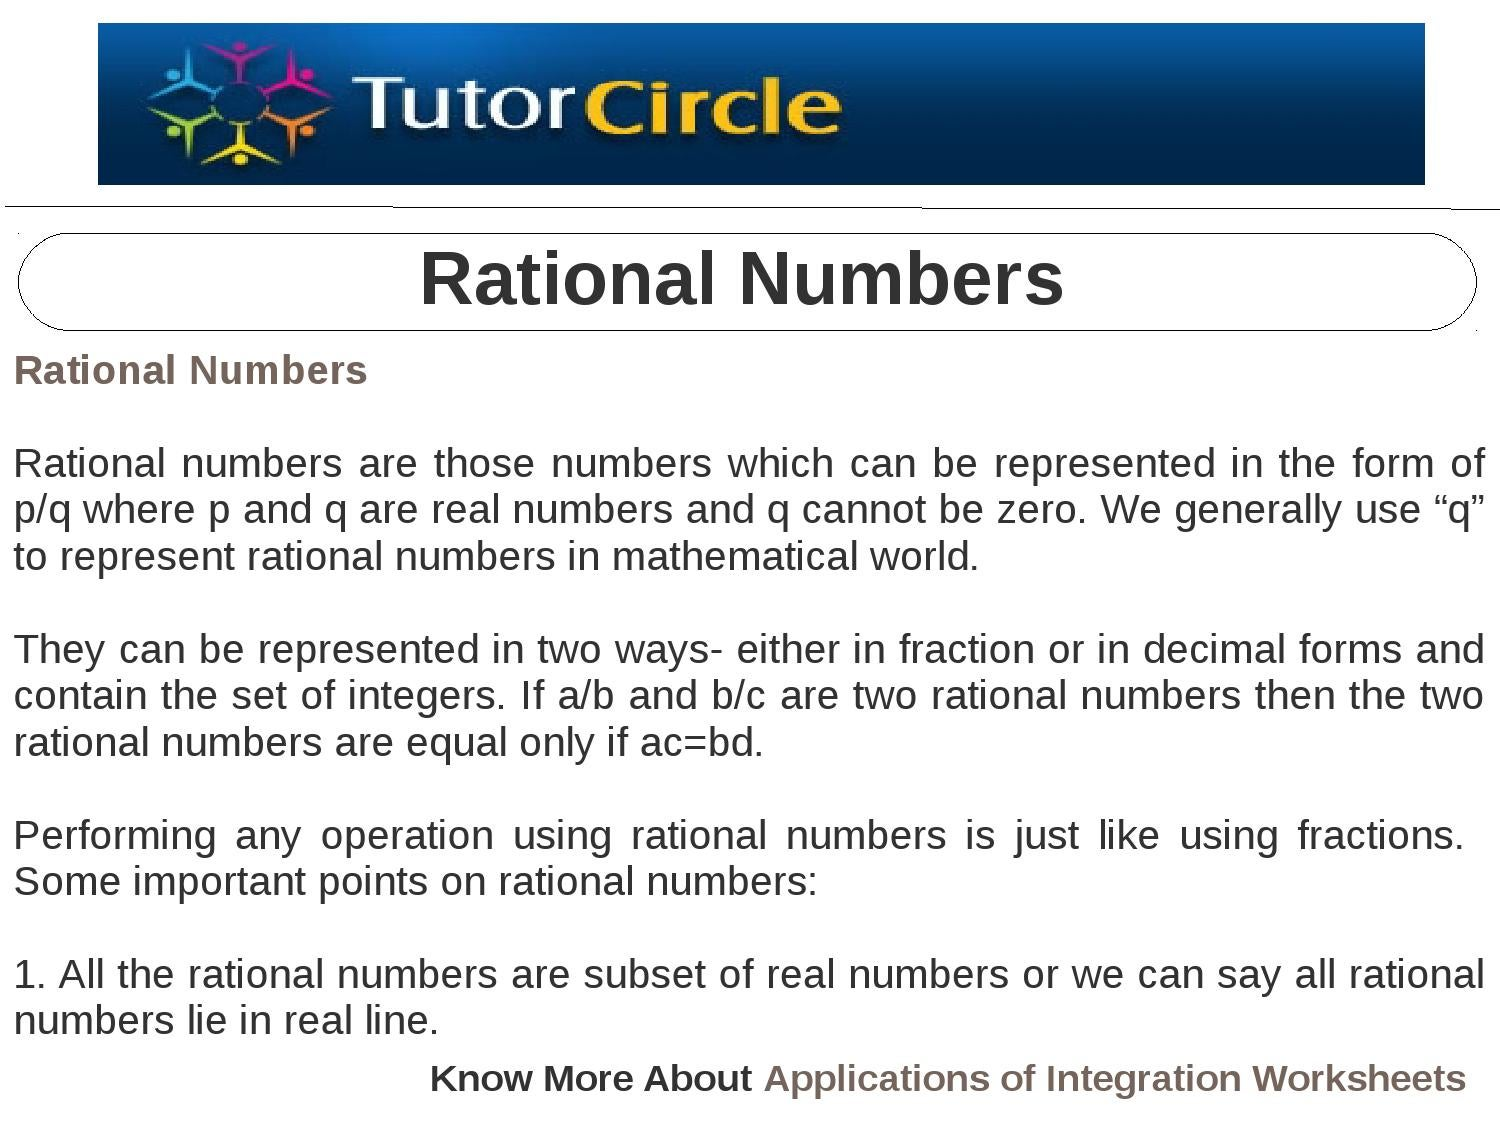 worksheet Operations With Rational Numbers Worksheet rational numbers by tutorcircle team issuu